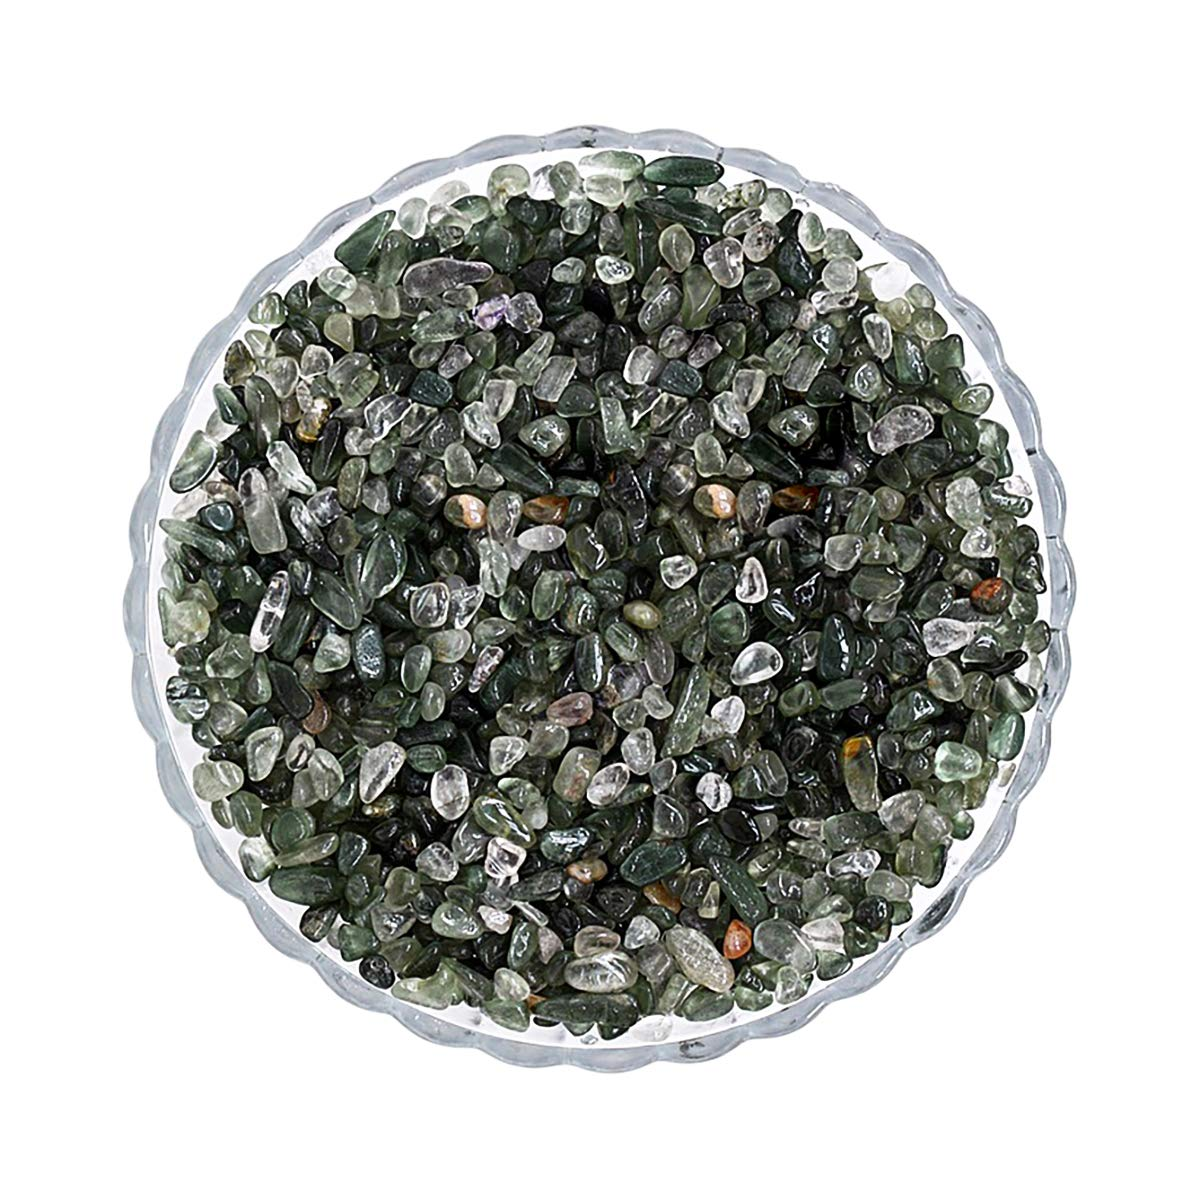 LiangGui Decorative Stones for Fish Tank Tumbled Chips Stone Natural Green Crystal